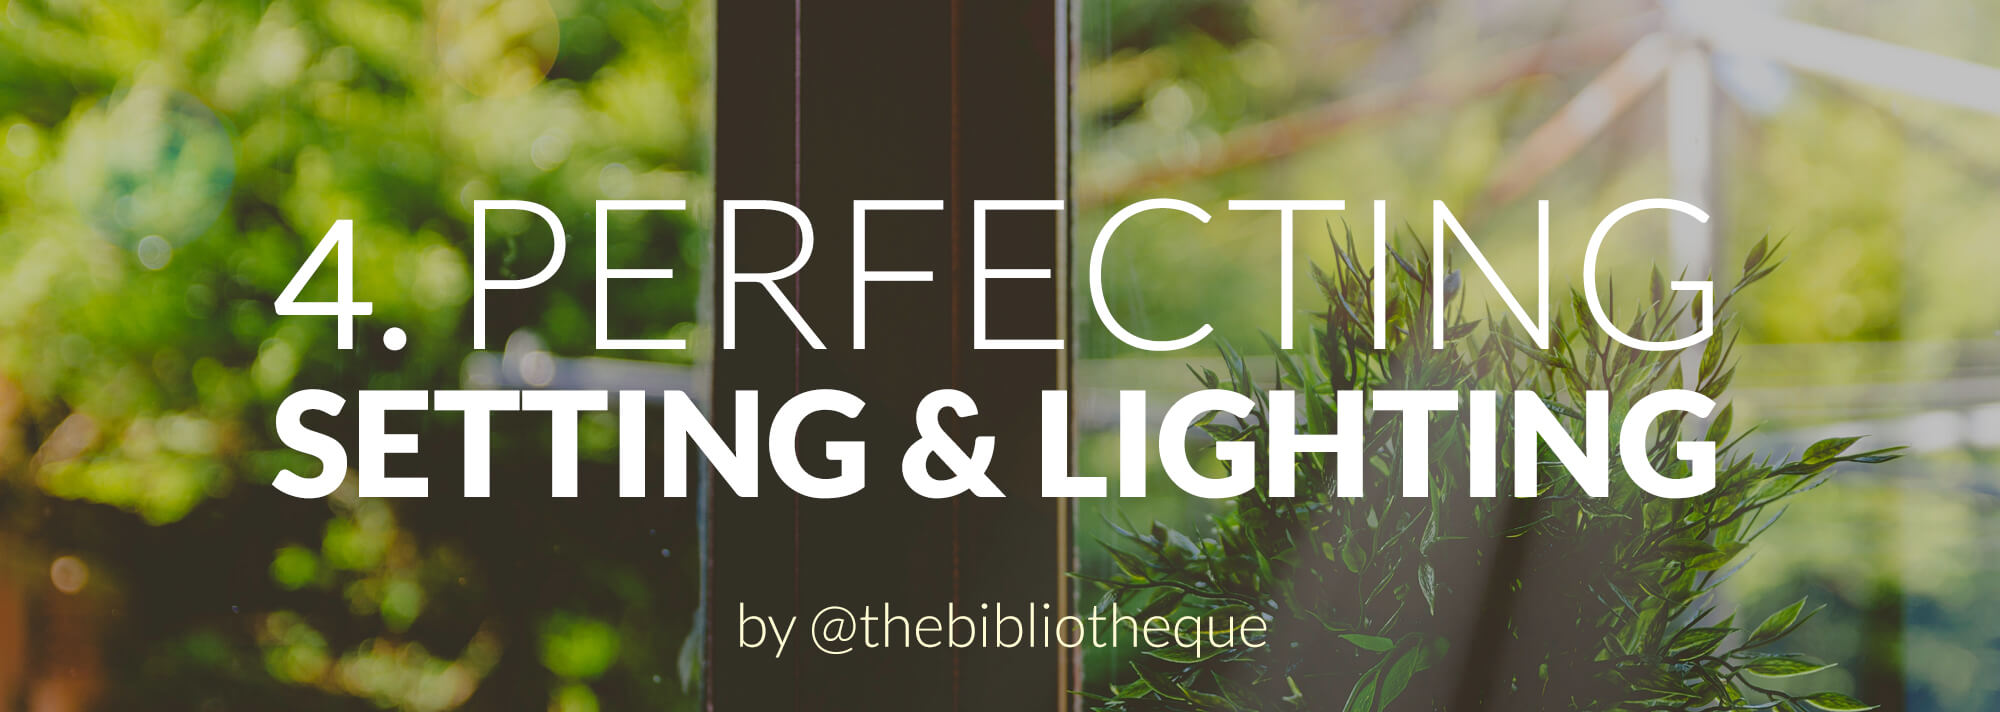 header image - perfecting setting & lighting